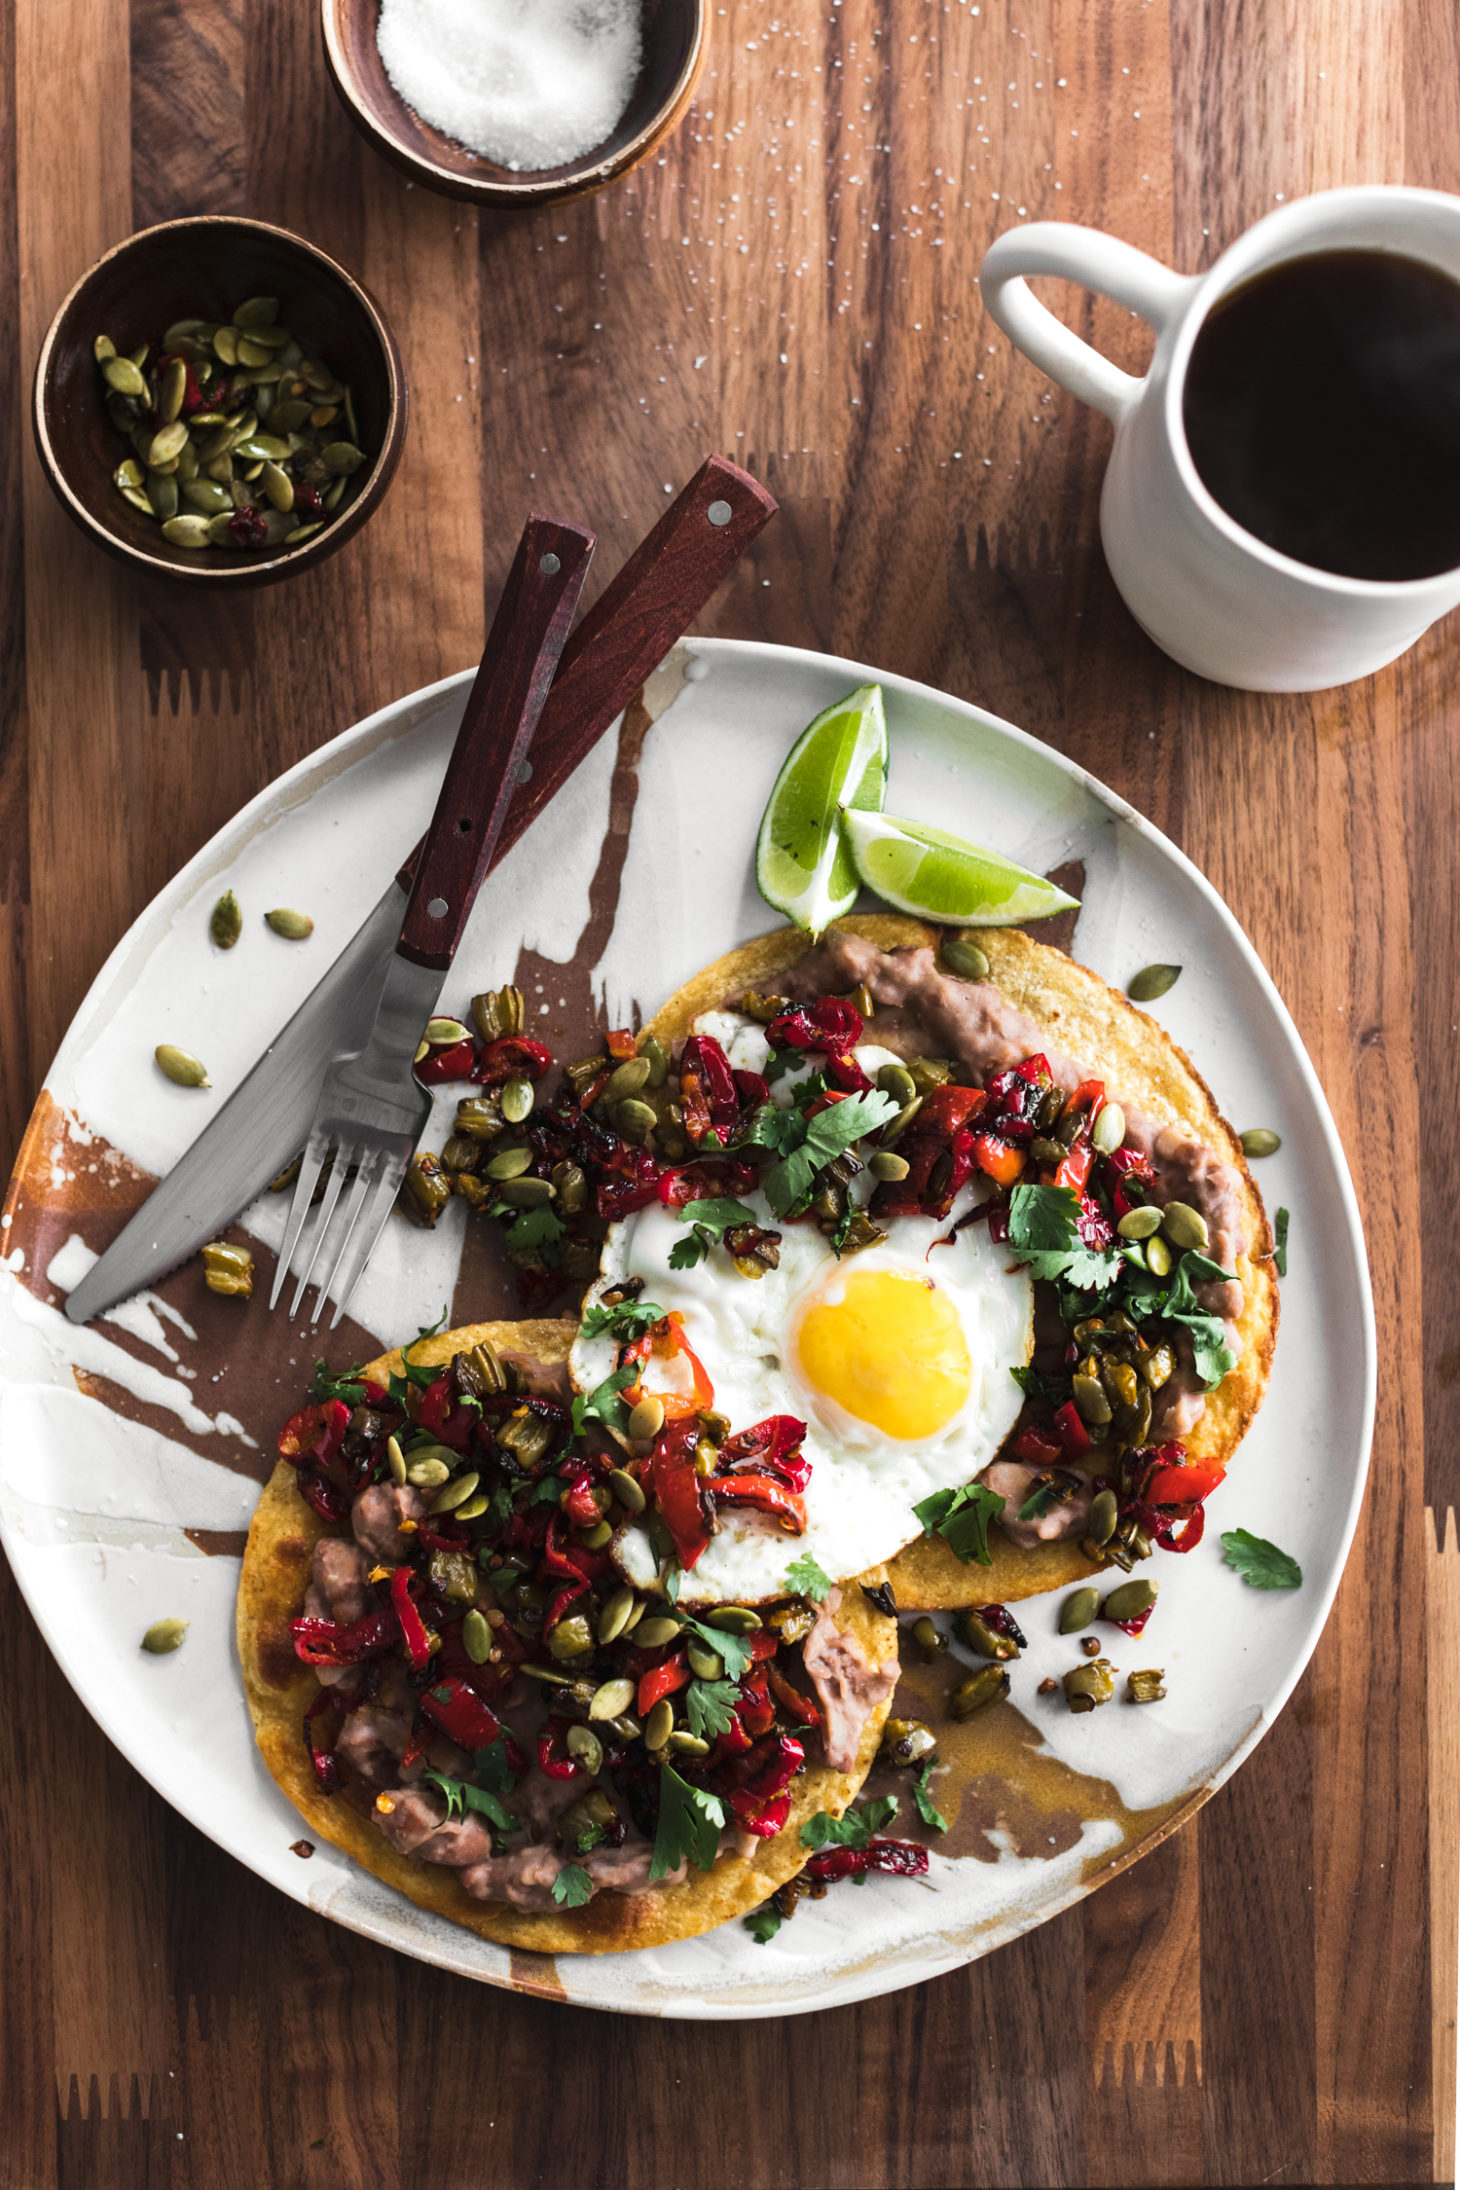 Breakafst Tostadas with Pinto Beans, Nopales, Peppers, and Eggs